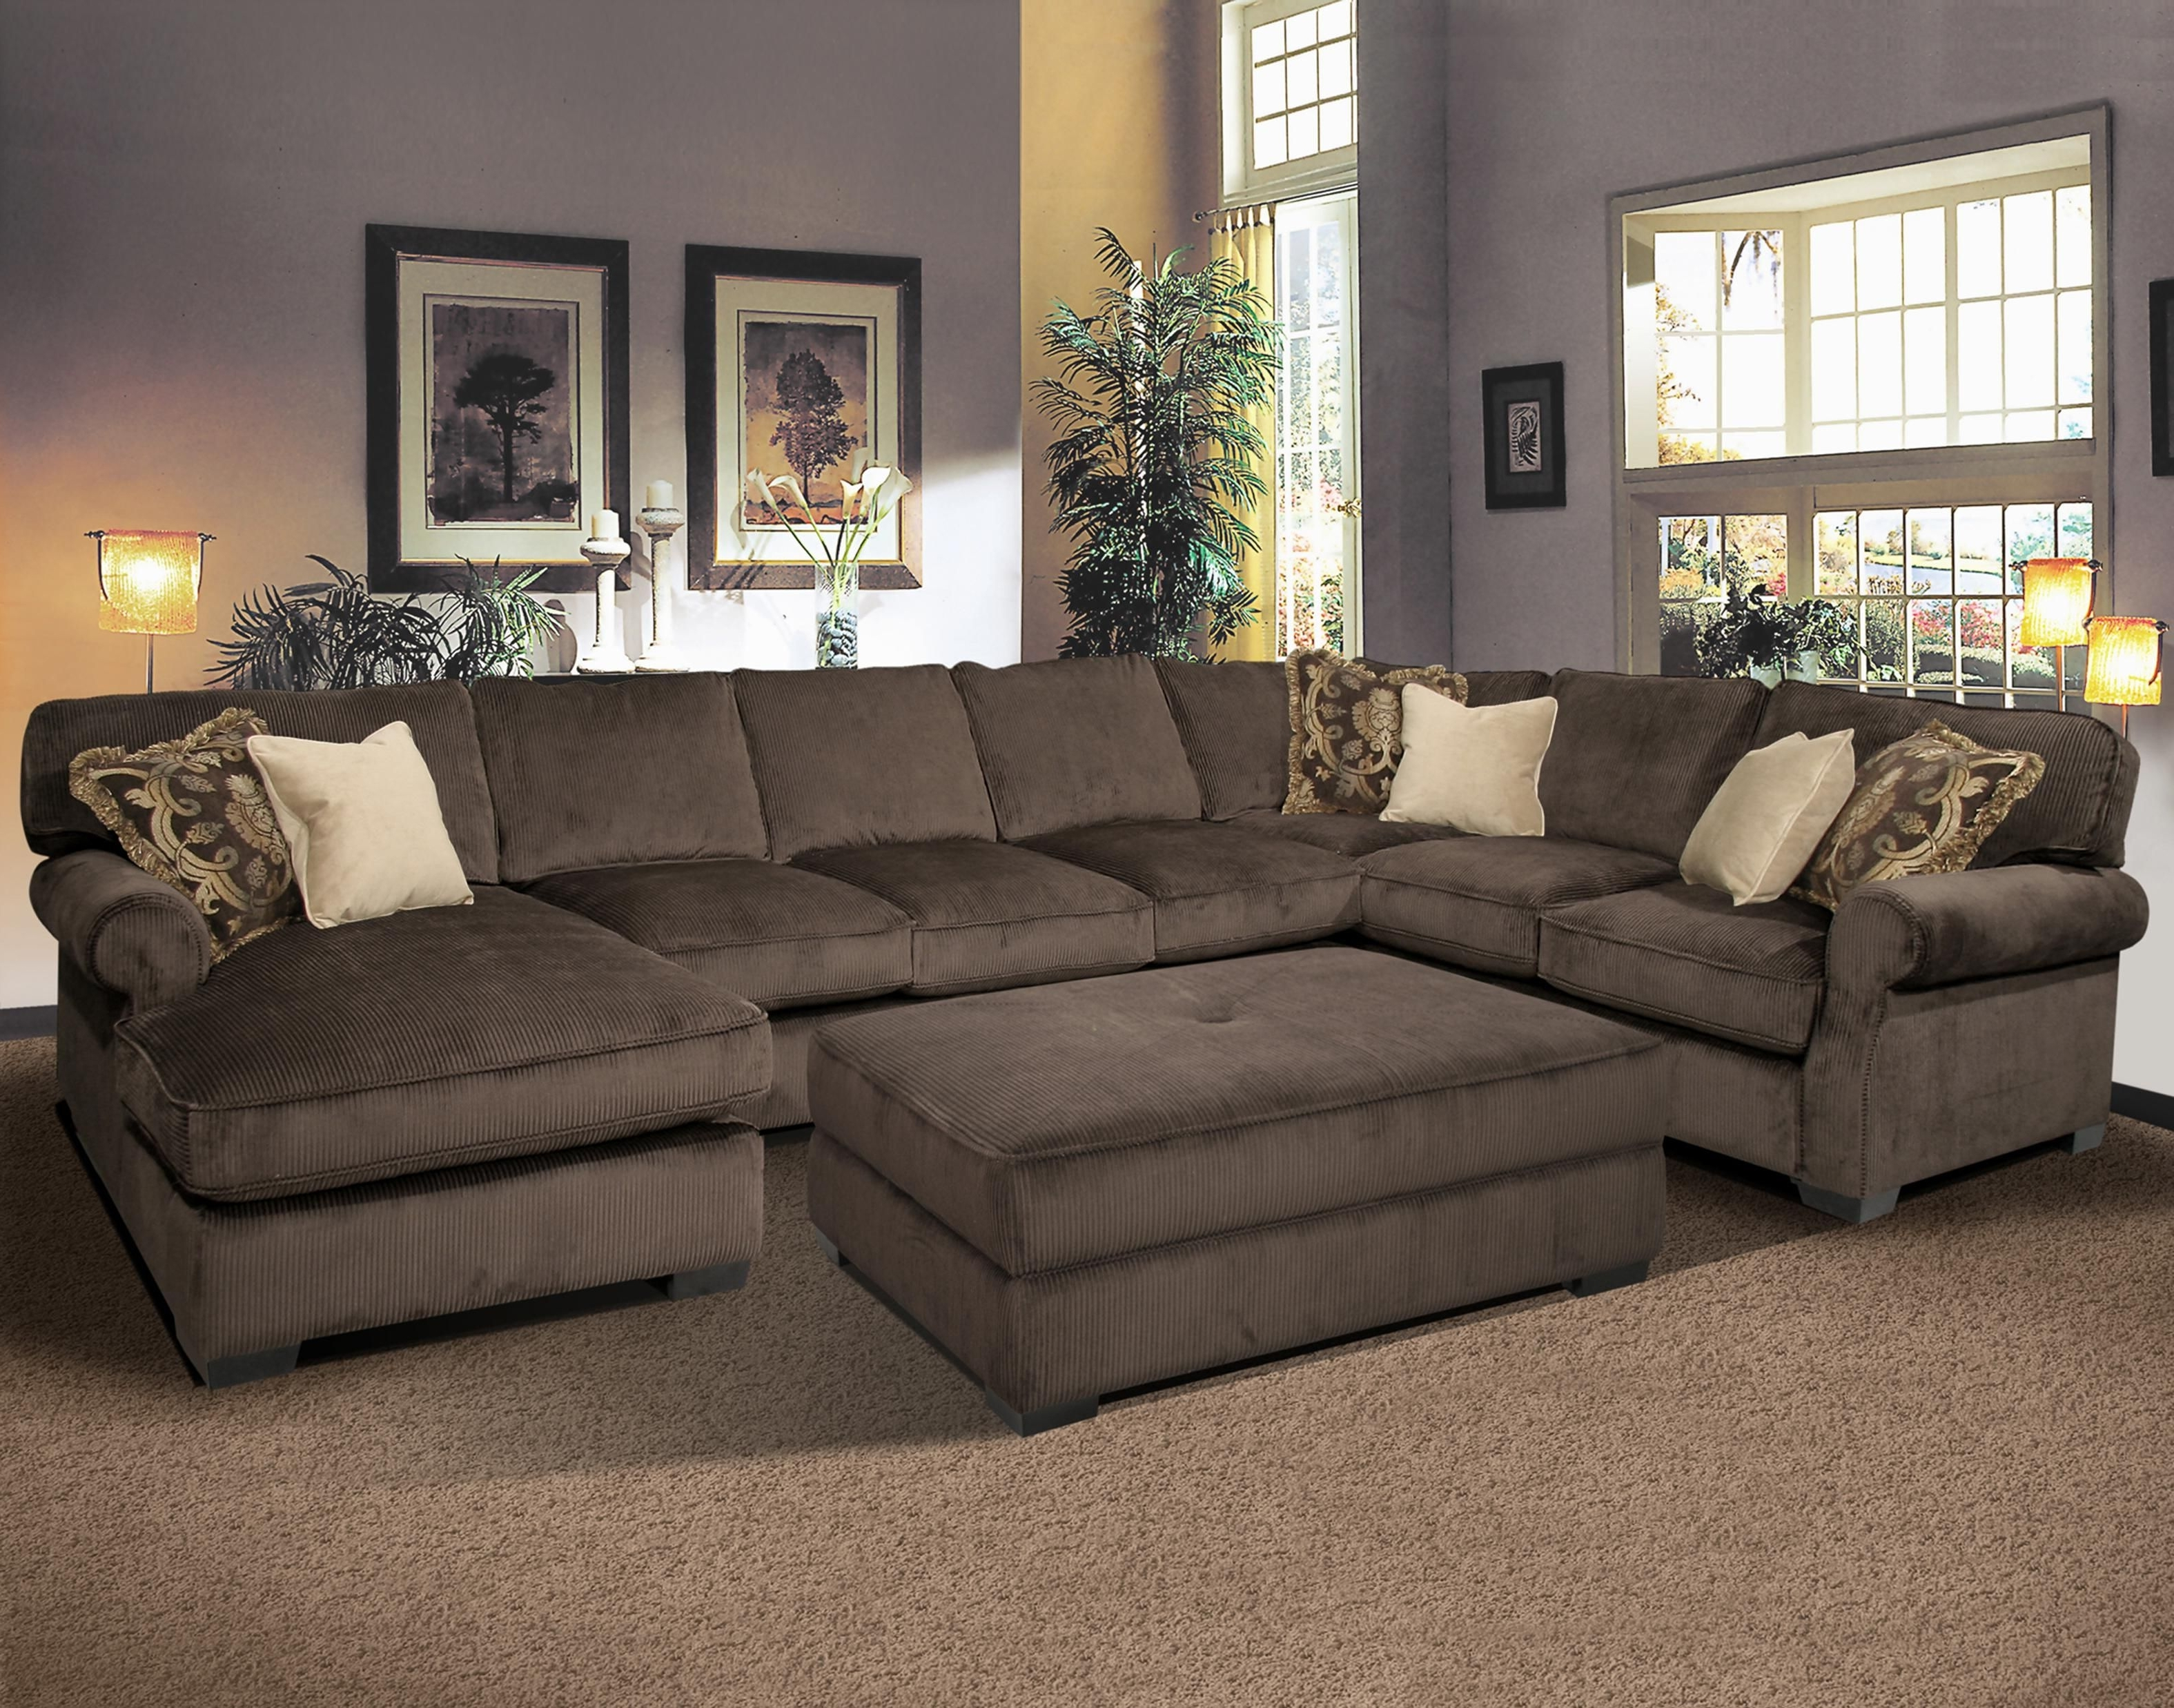 Long Chaise Sofas Inside Widely Used Big And Comfy Grand Island Large, 7 Seat Sectional Sofa With Right (View 12 of 20)